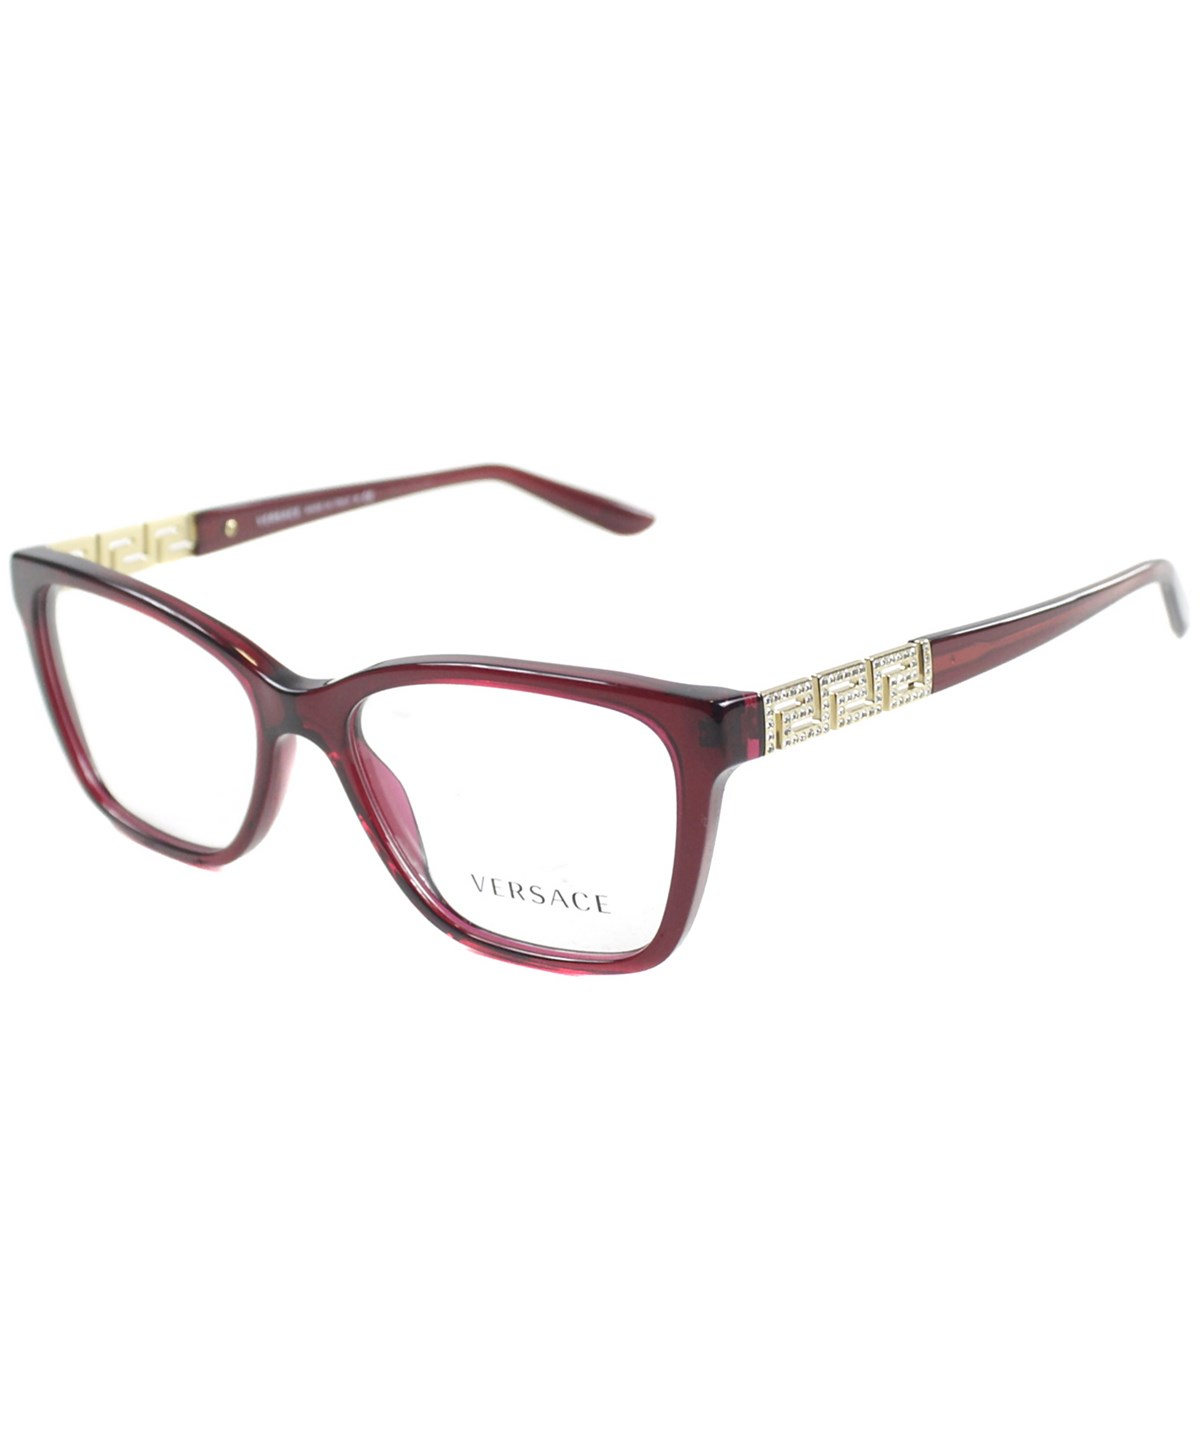 Versace Rectangle Plastic Eyeglasses In Transparent Red And Gold Greca